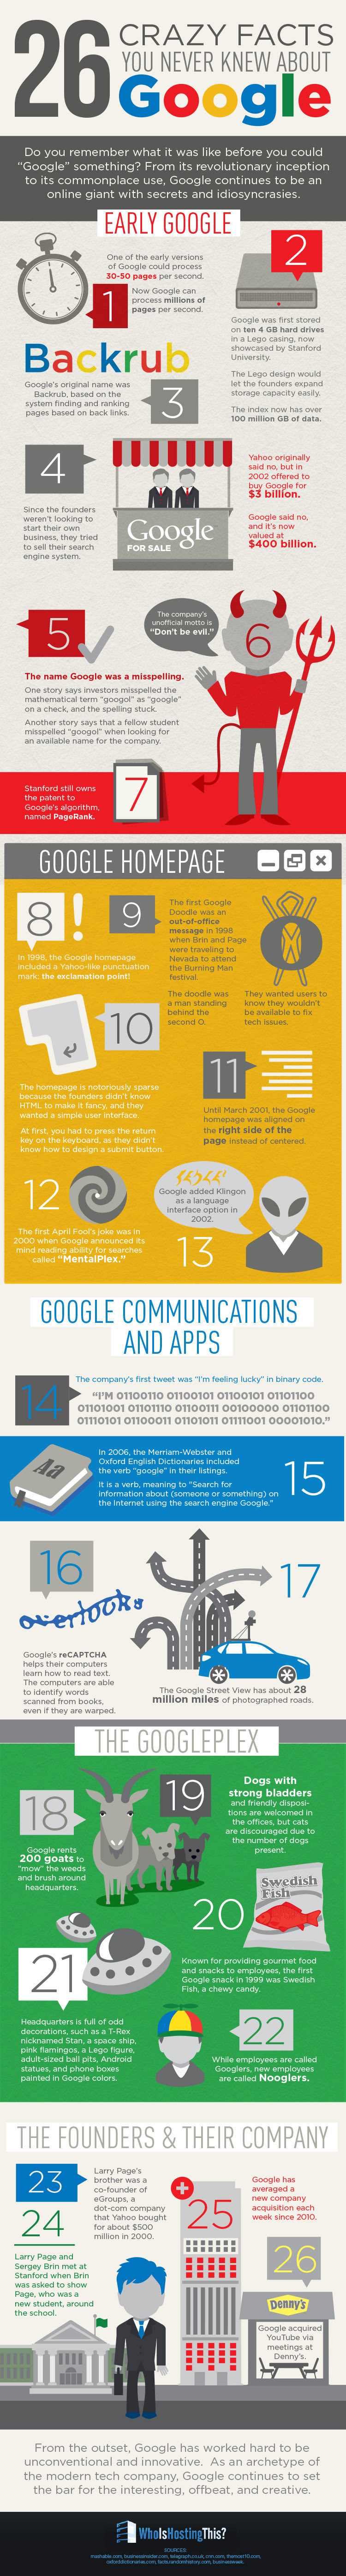 Infographic: 26 Crazy Facts You Never Knew About Google